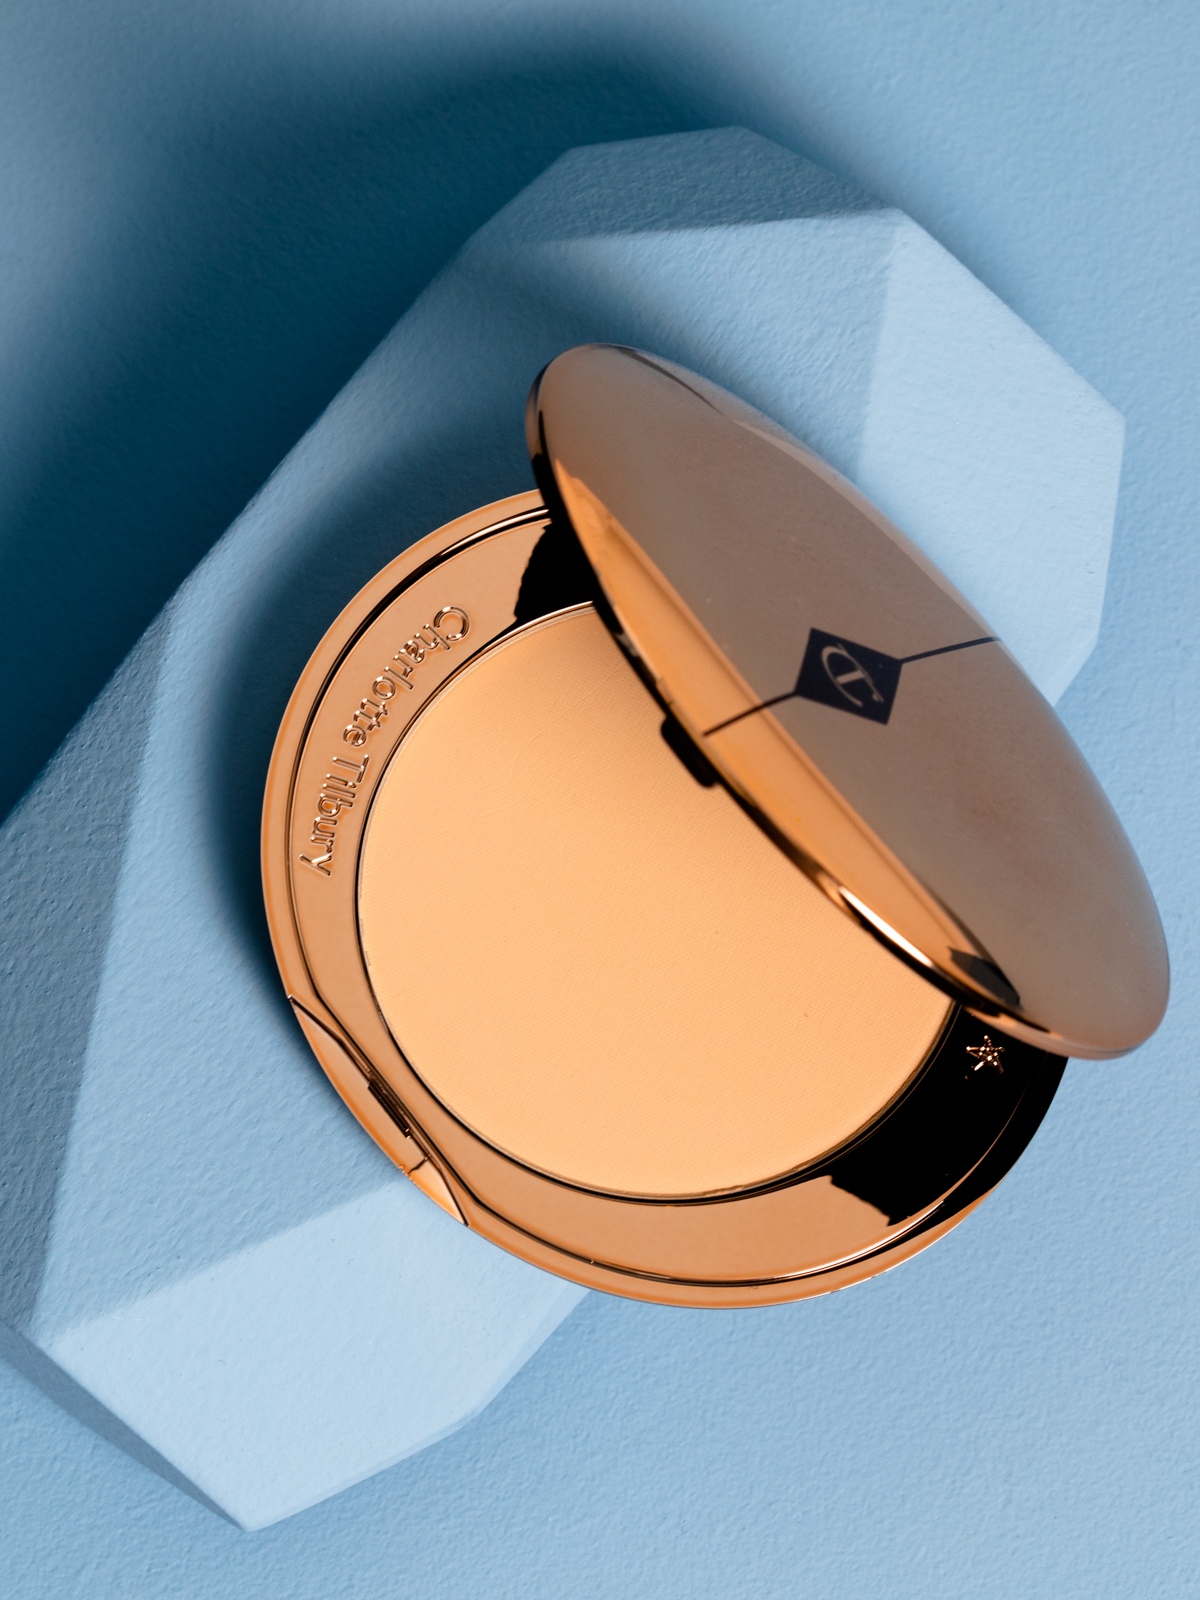 Currant Magazine presents a beauty holy grail: Charlotte Tilbury's Airbrush Flawless Filter.